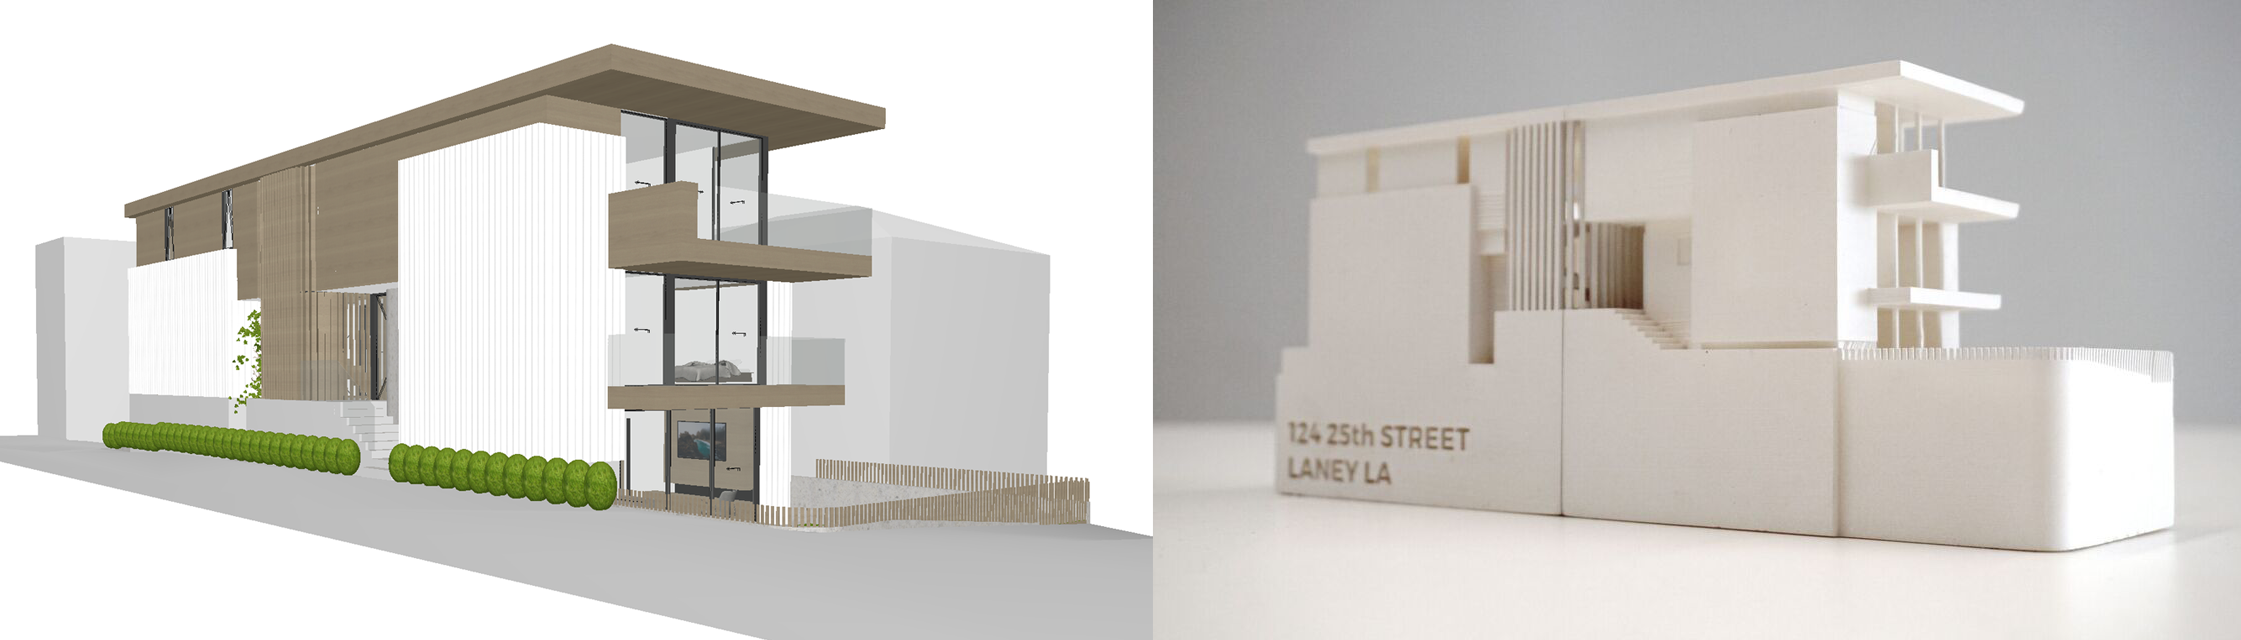 A Digital Rendering Of A House Next To A 3D Printed Model Of The Same House